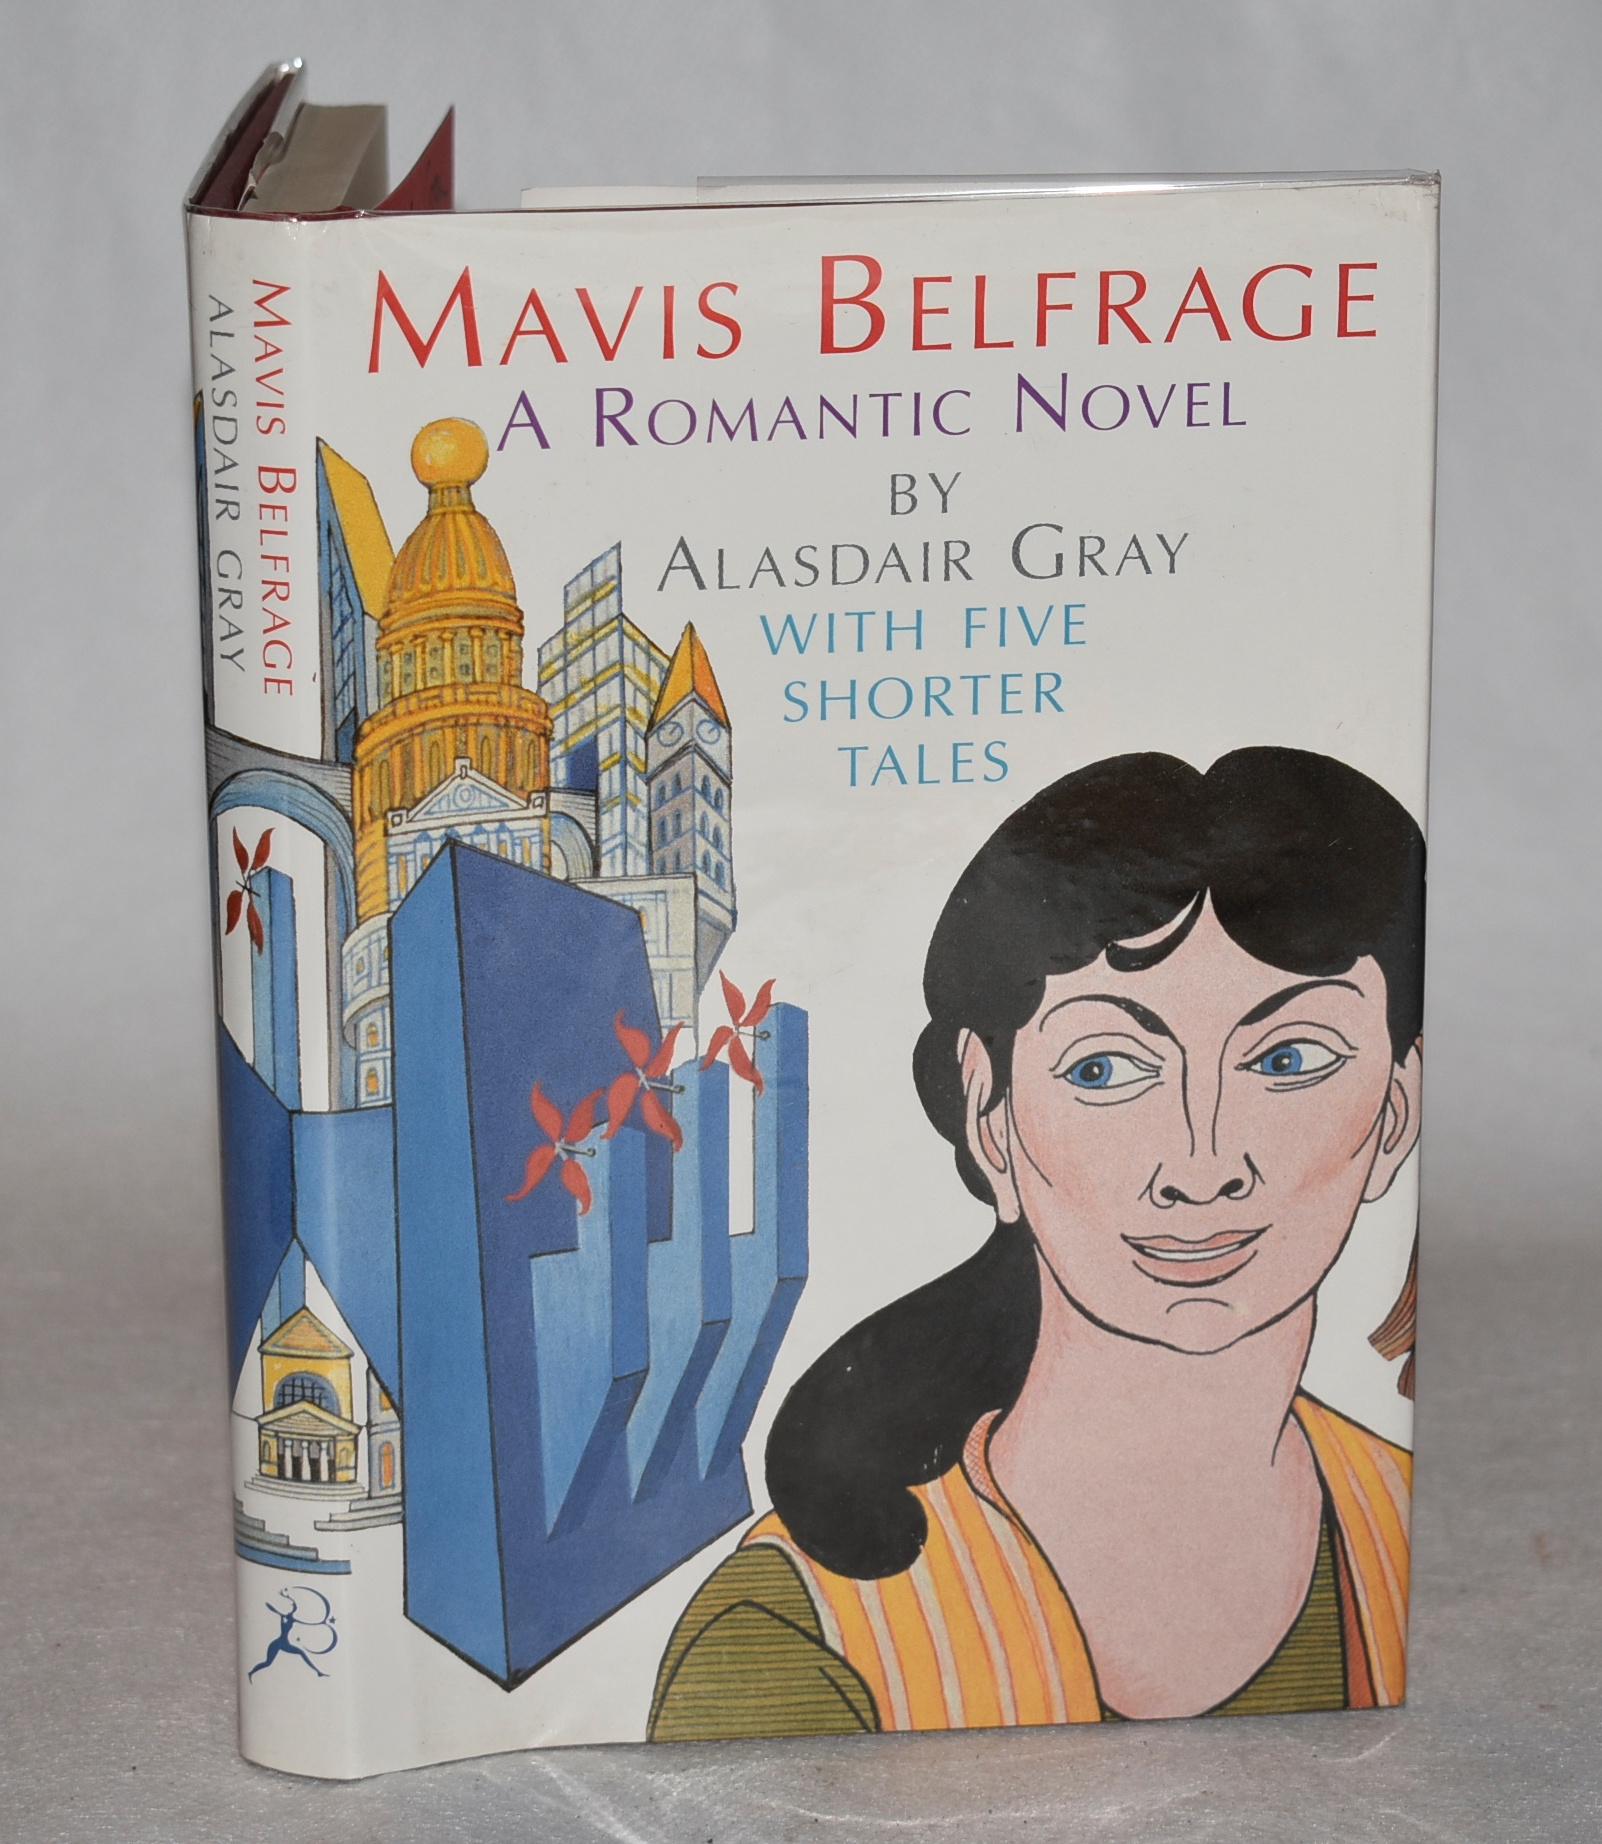 Image for Mavis Belfrage. A Romantic Novel. With Five Shorter Tales. Signed.